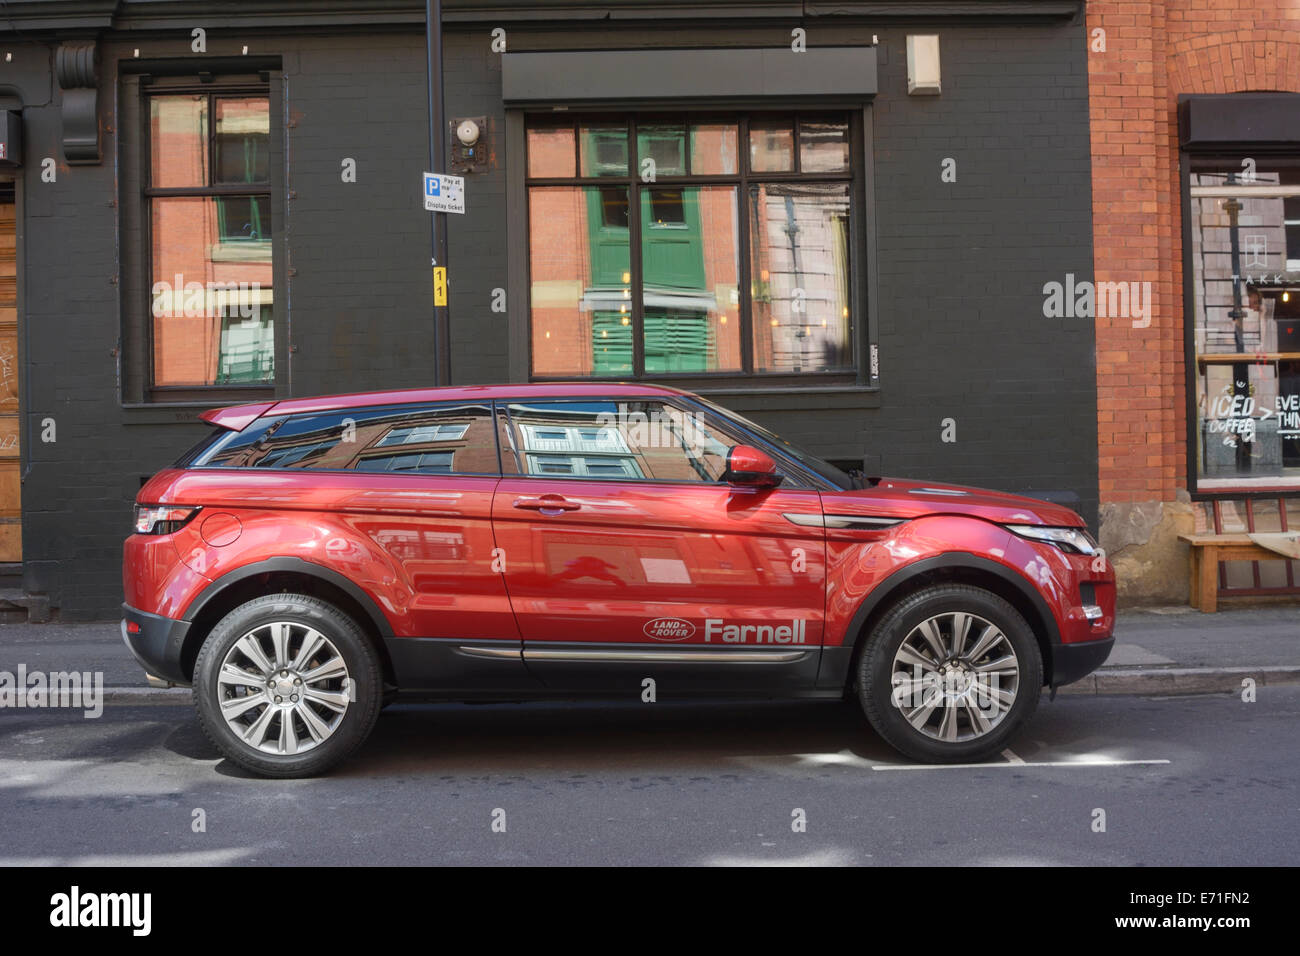 range rover evoque parked in the city streets of central manchester stock photo royalty free. Black Bedroom Furniture Sets. Home Design Ideas